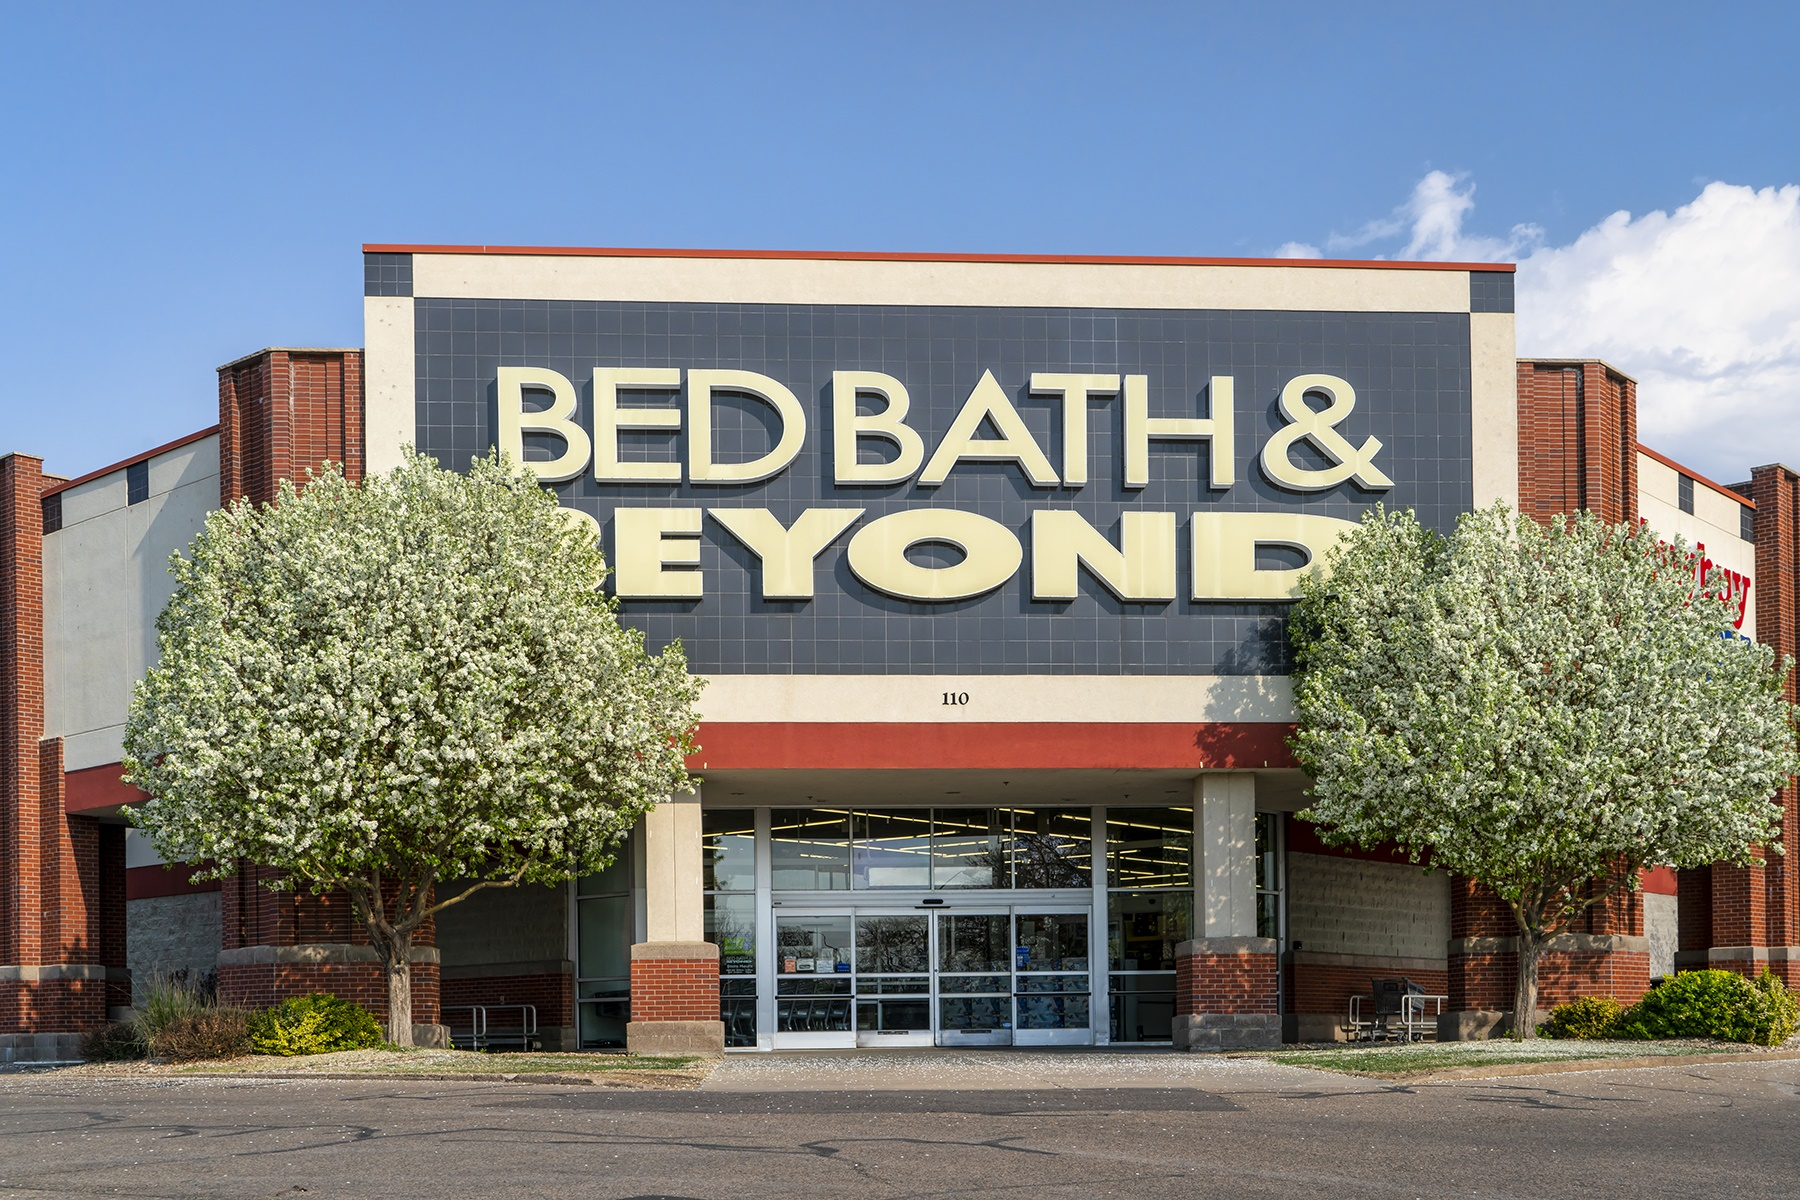 Retailer Bed Bath & Beyond closed 21 stores in the fourth quarter last year and plans to close at least 40 more this year, according to company officials. Photo: iStock